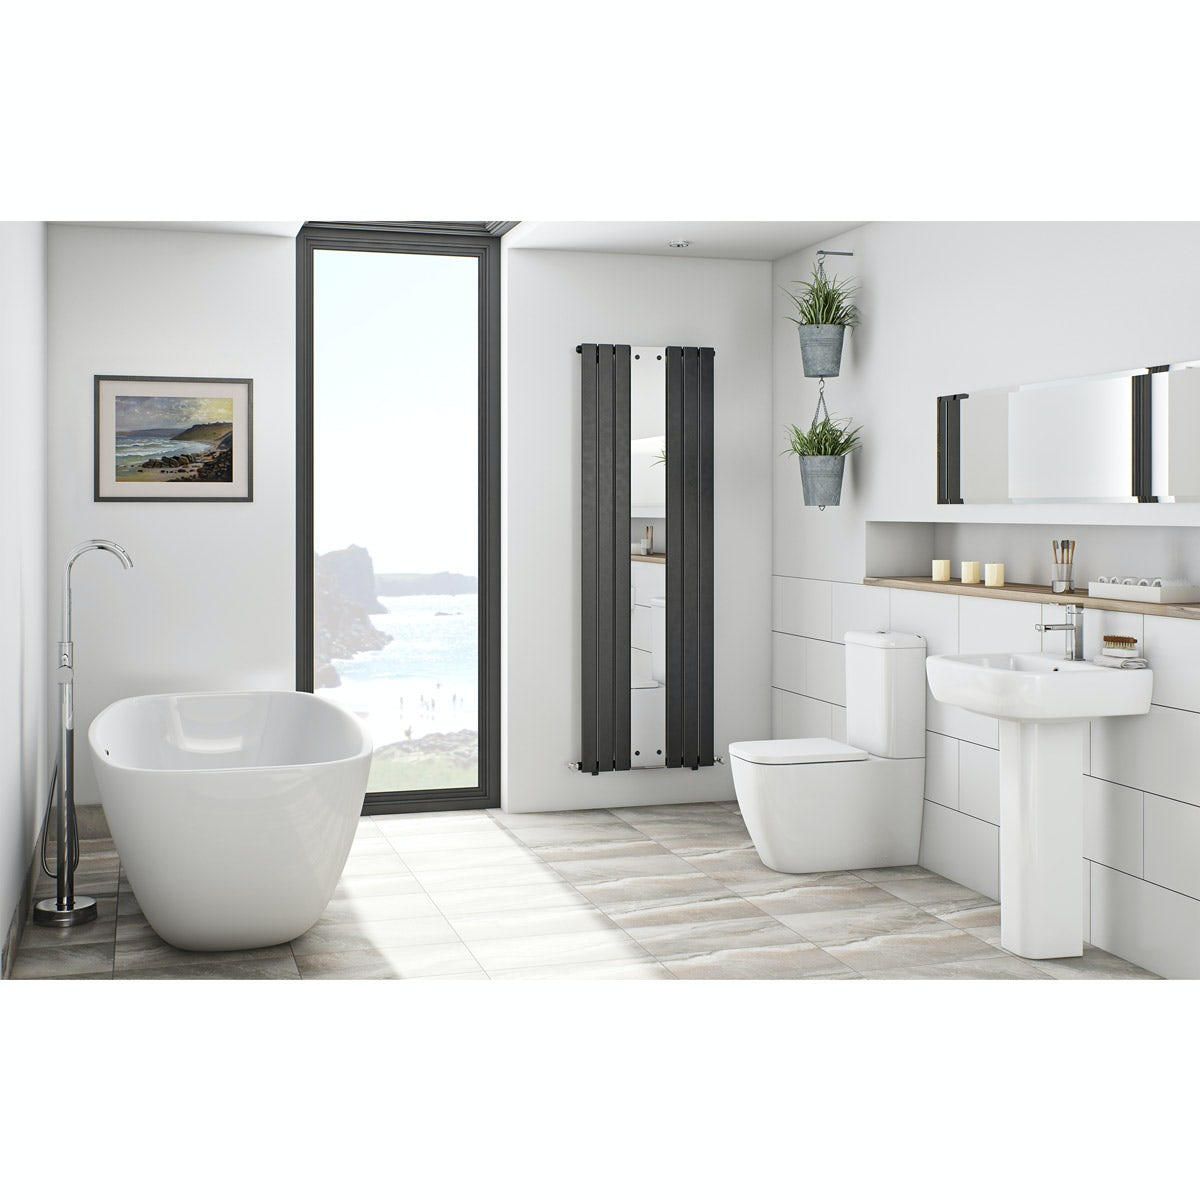 mode ellis bathroom suite with freestanding bath. Black Bedroom Furniture Sets. Home Design Ideas